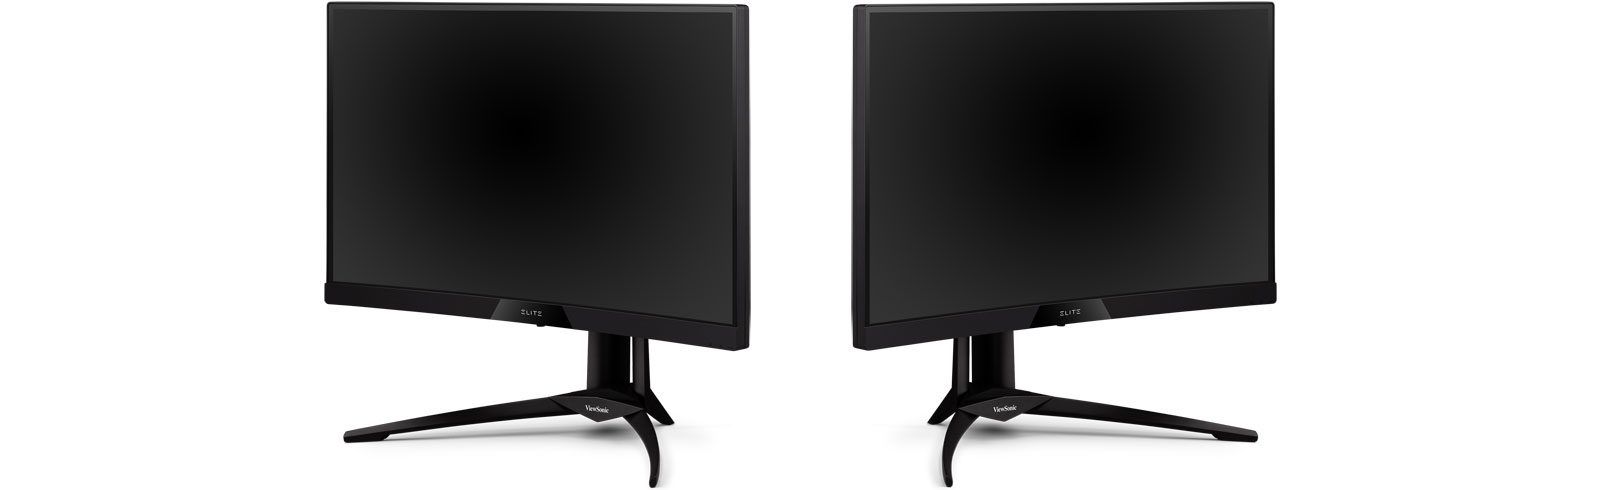 The ViewSonic XG270QC will be available for purchase from this month